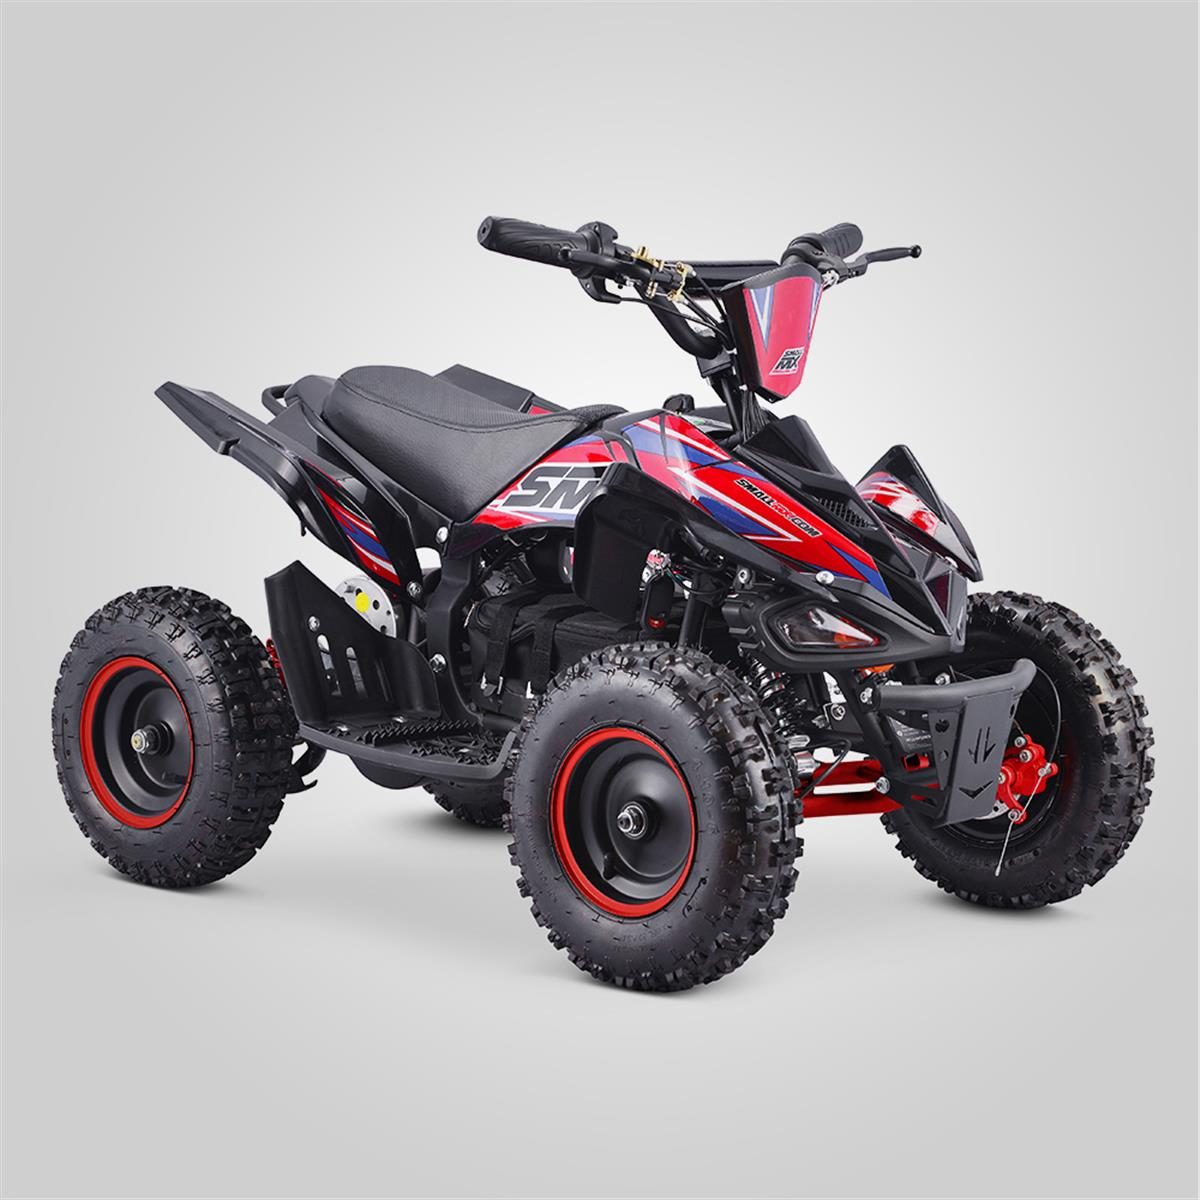 pocket-quad-enfant-800w-smallmx-vx-6-rouge